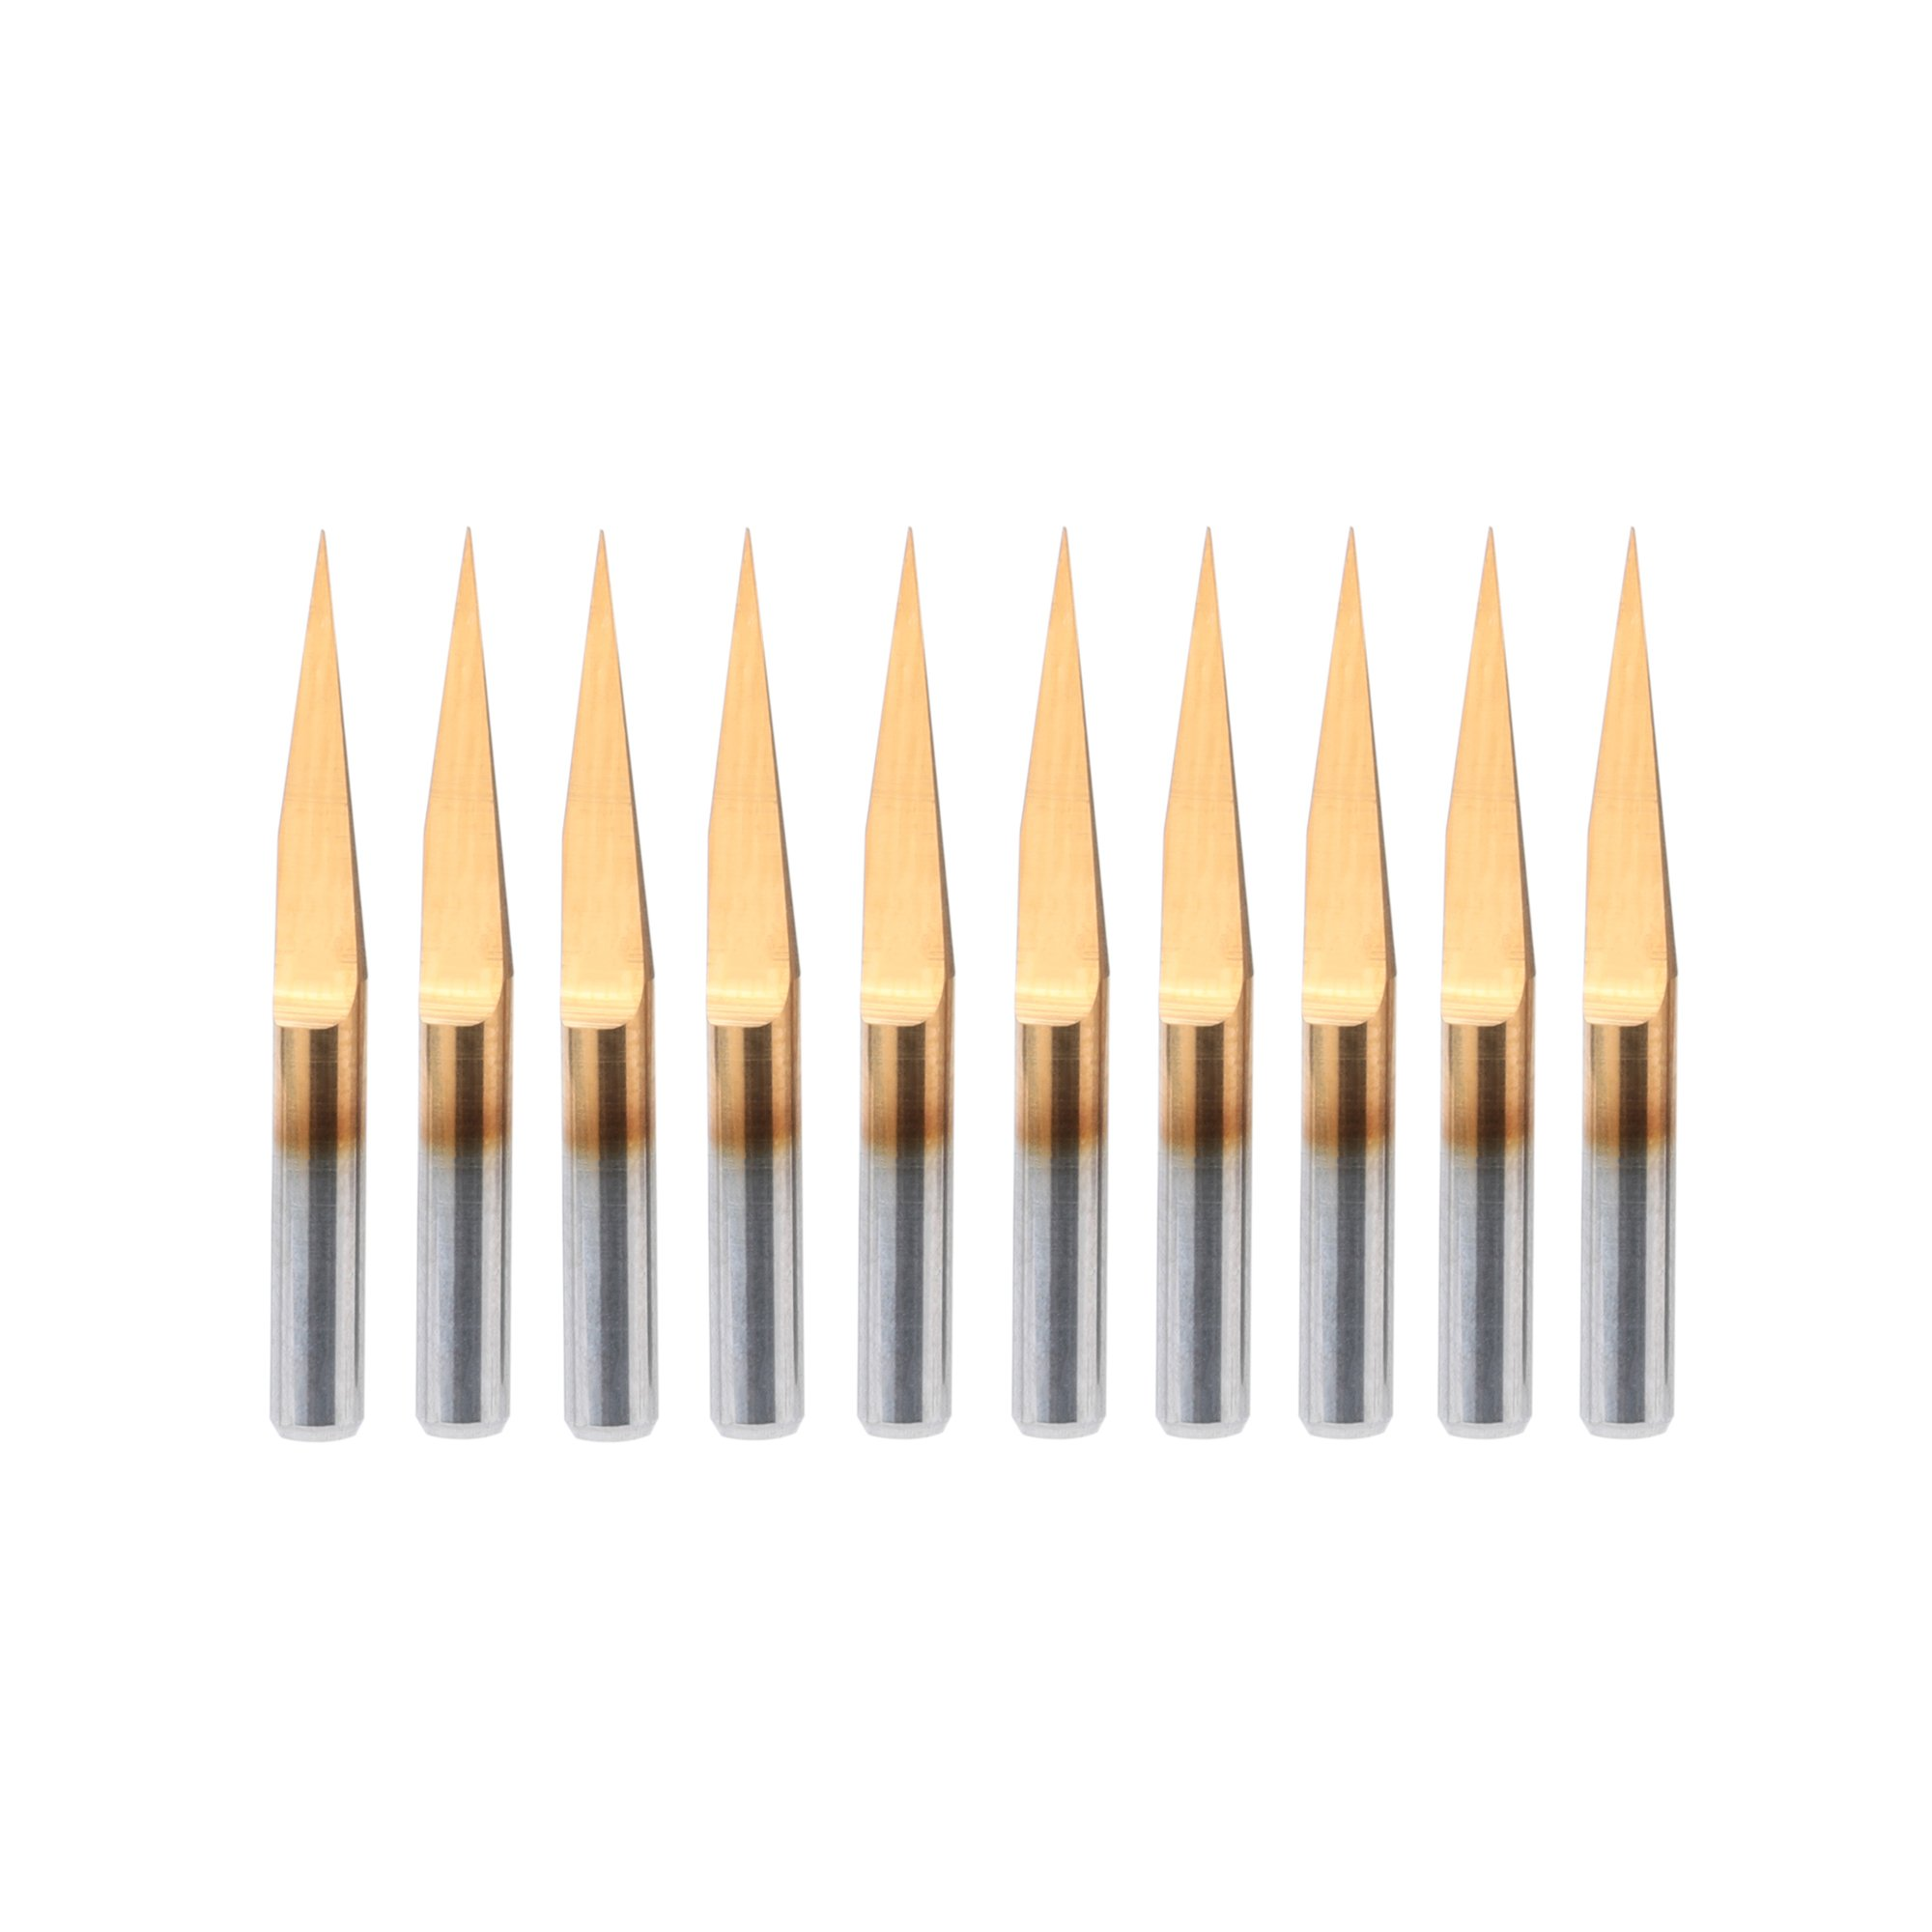 HQMaster 10 Degree 0.1mm Tip Titanium Coated Flat Bottom PCB Engraving Bits V-shape CNC Router Cutter Cutting Tool Tungsten Steel, Pack of 10